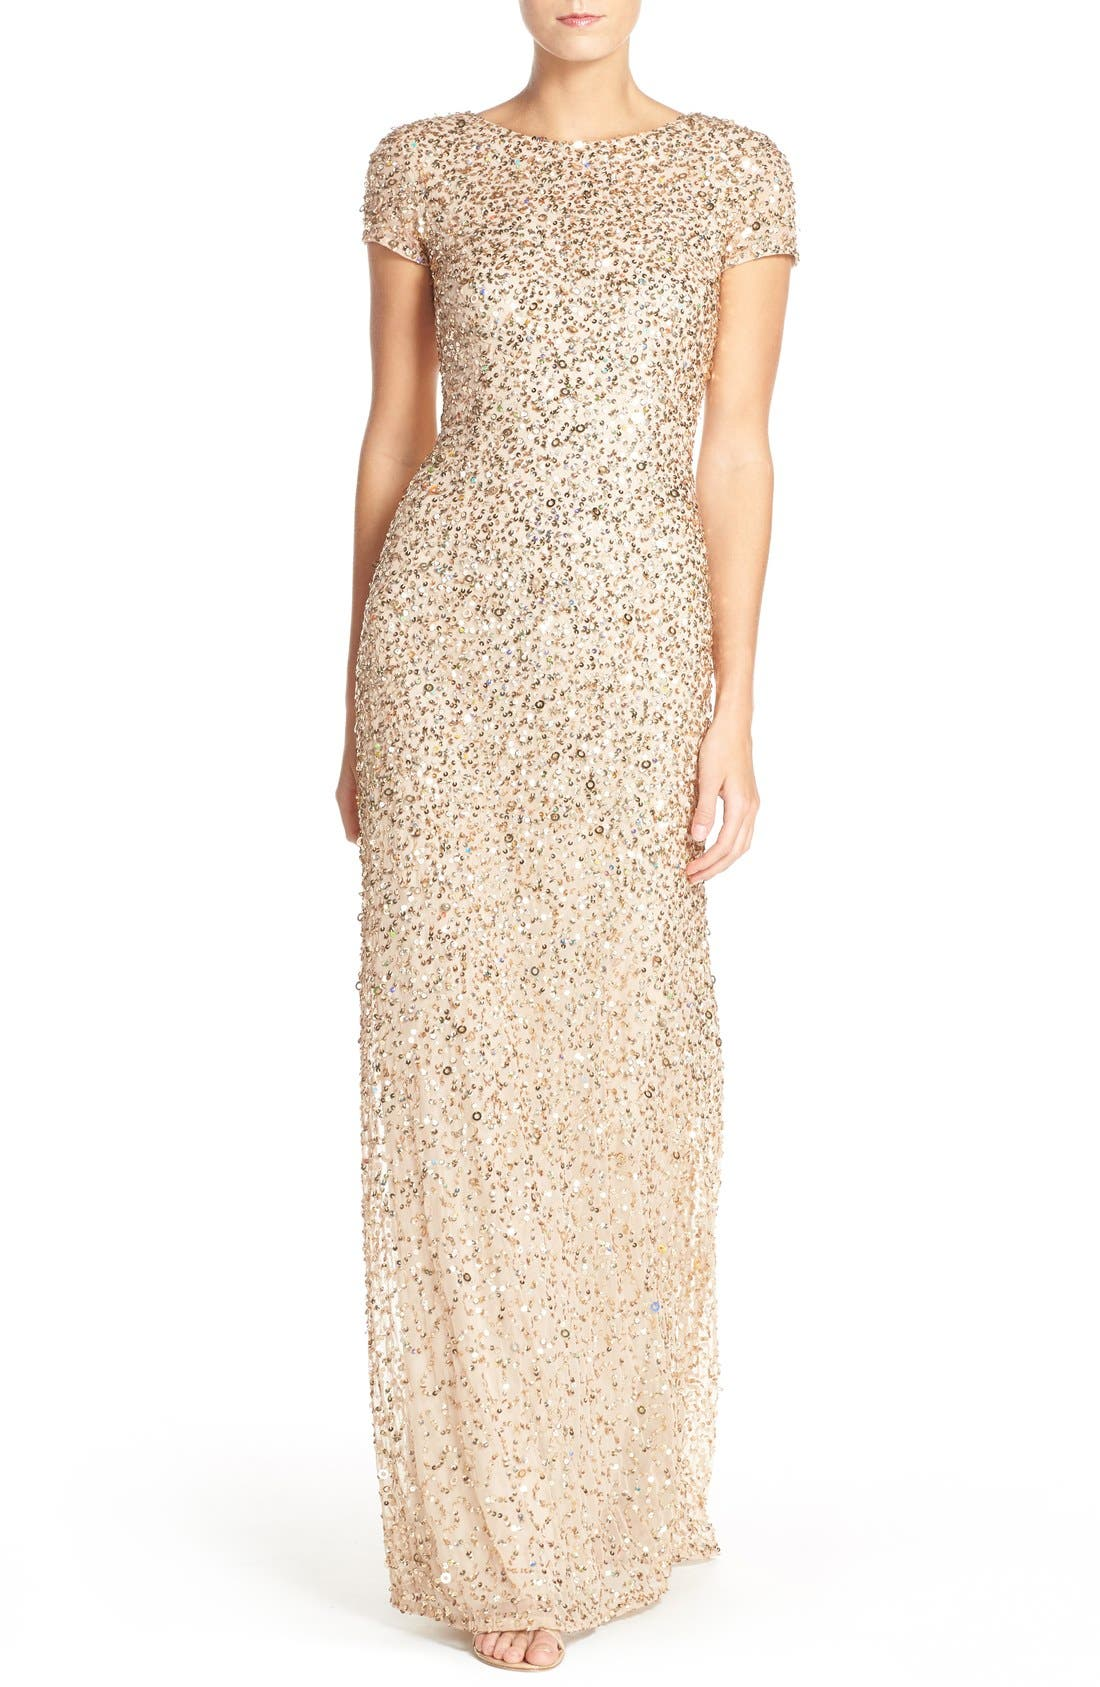 Women's Formal Dresses | Nordstrom